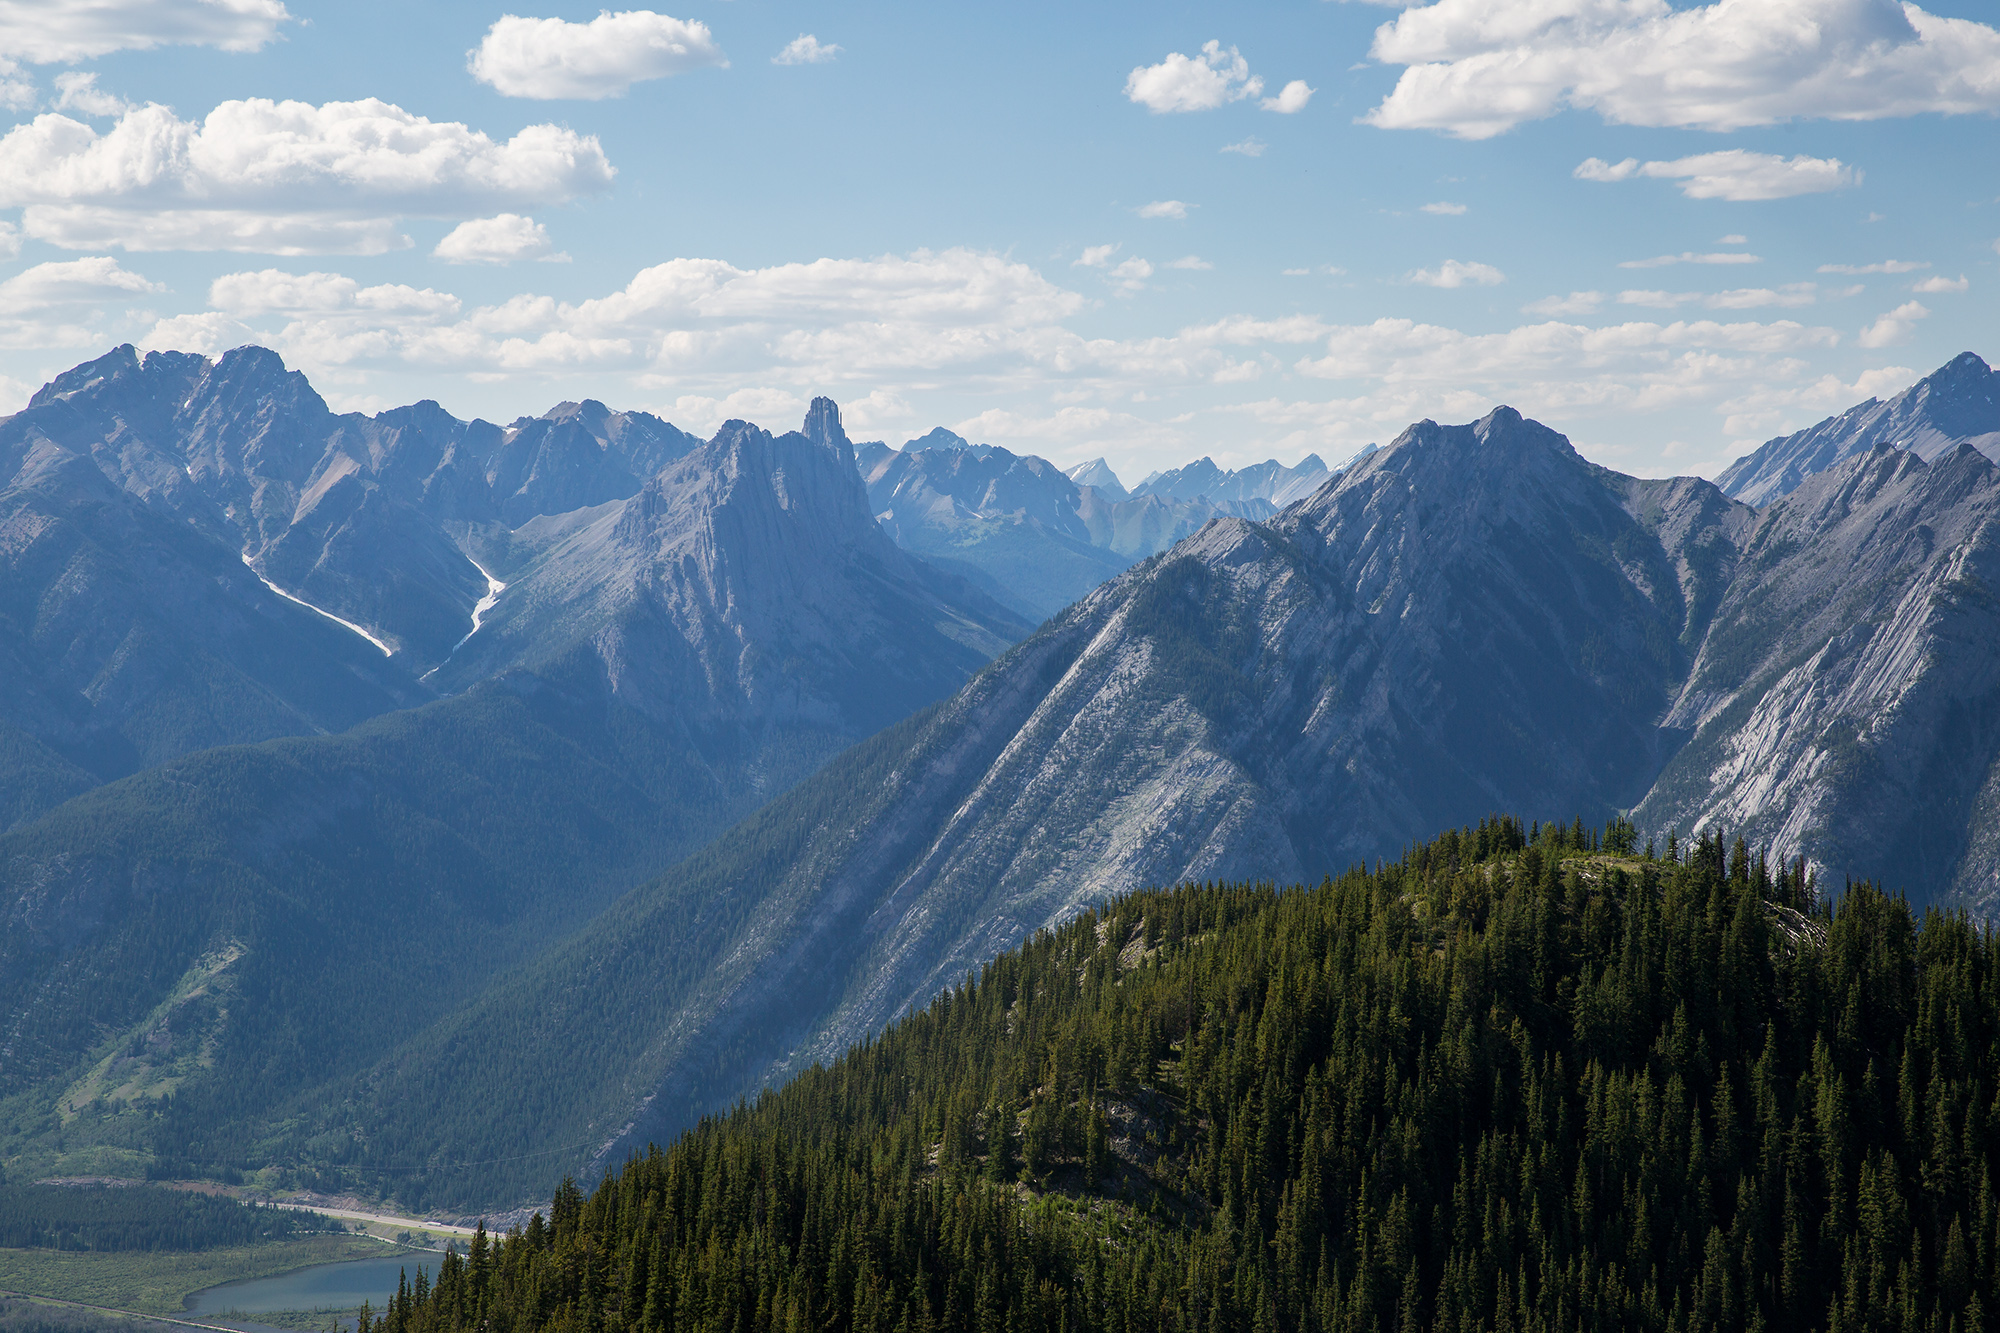 The stunning view of endless mountains seen from the top of the Banff Gondola.